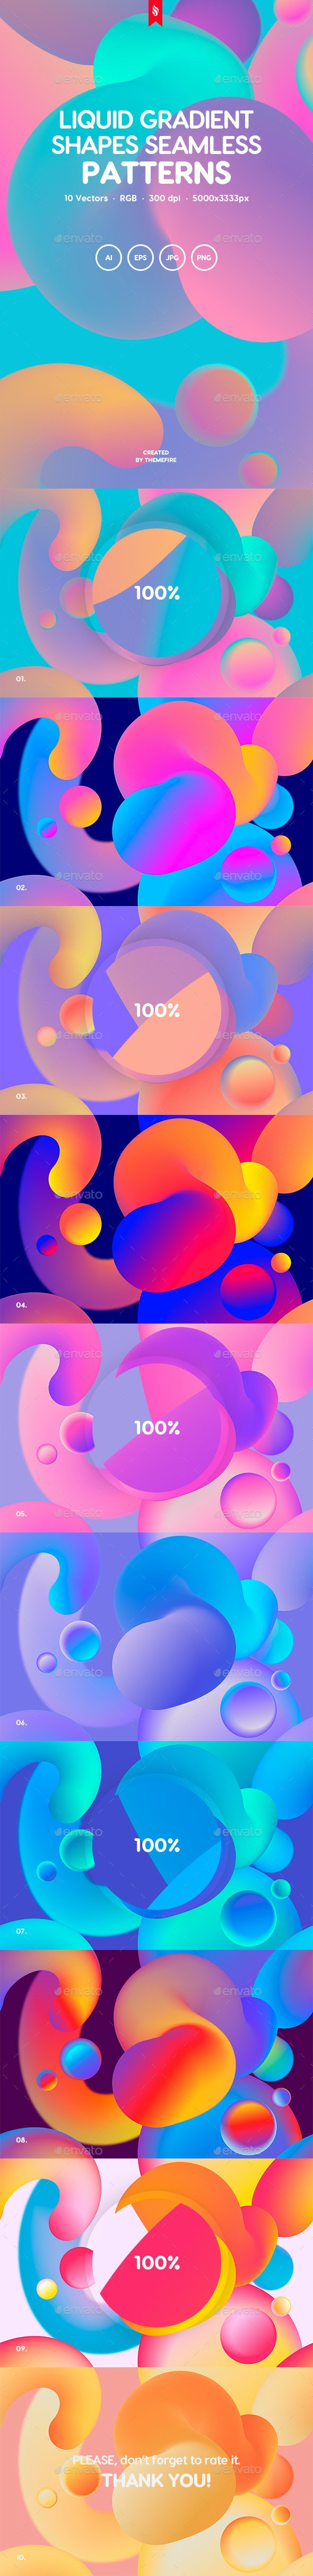 Liquid Gradient Shapes Seamless Patterns - Abstract Backgrounds